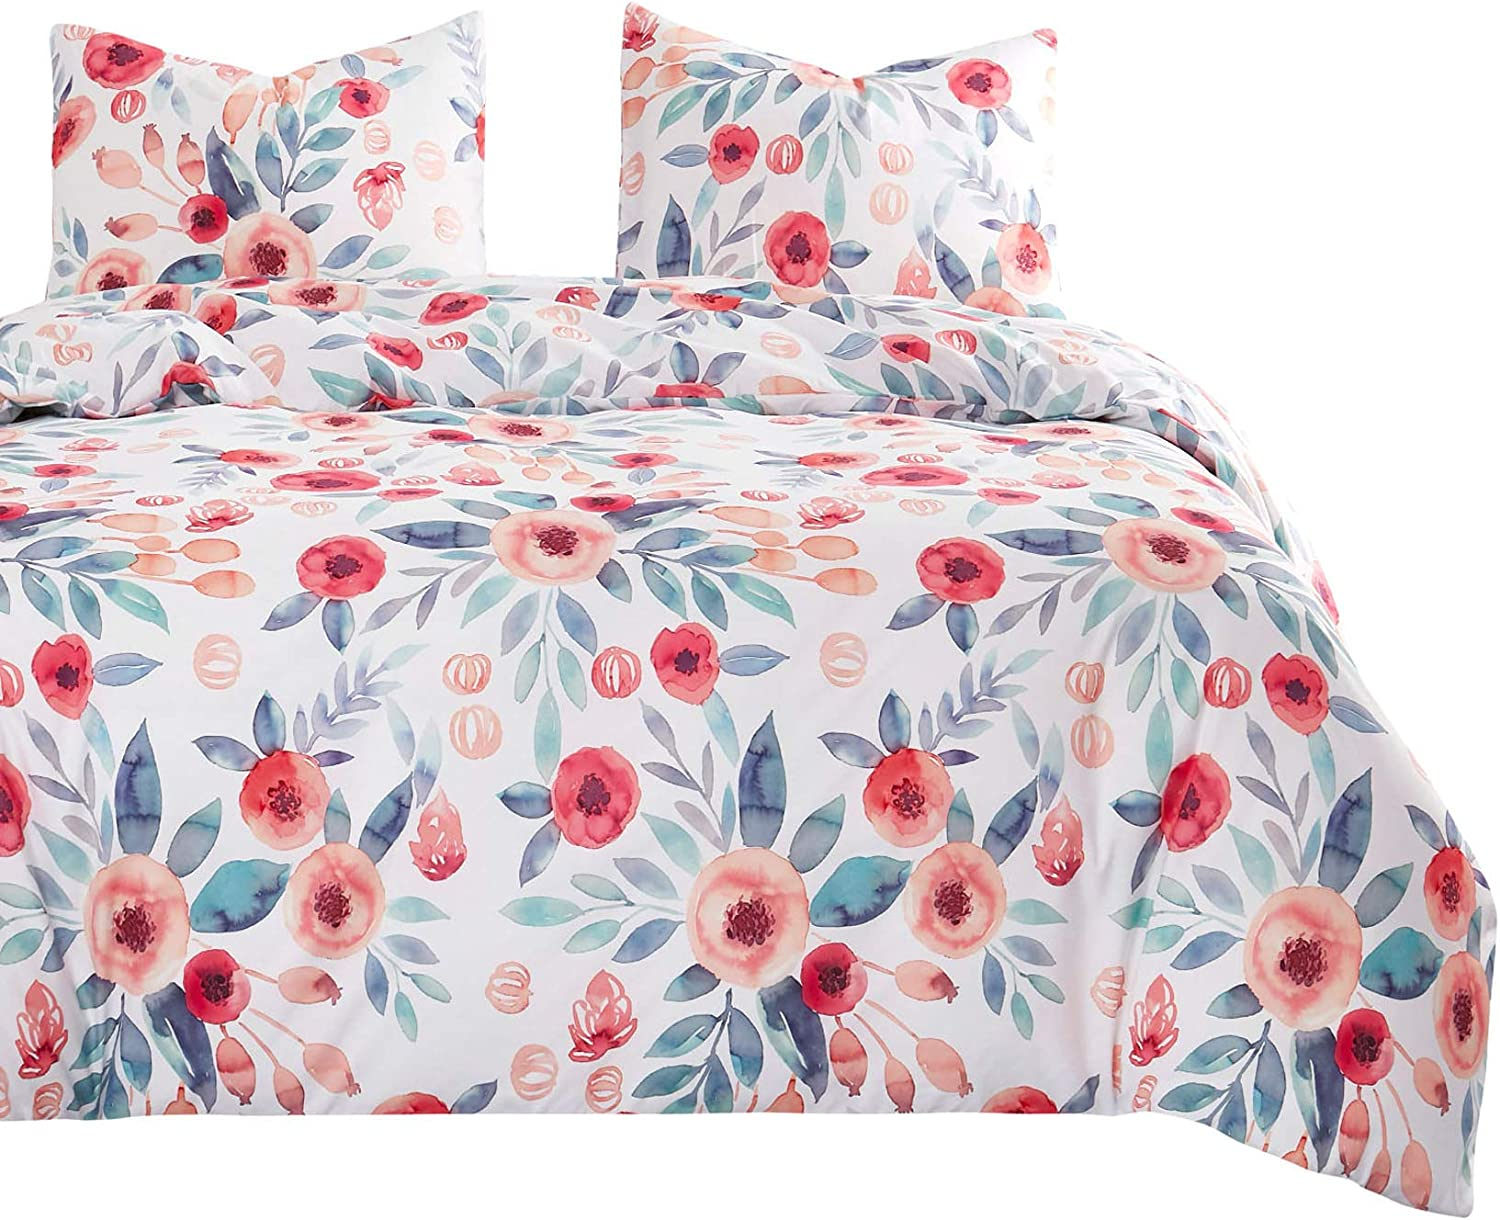 Wake In Cloud - Floral Comforter Set, Flowers Leaves Botanical Plant Pattern Printed on White, Soft Microfiber Bedding (3pcs, Queen Size)